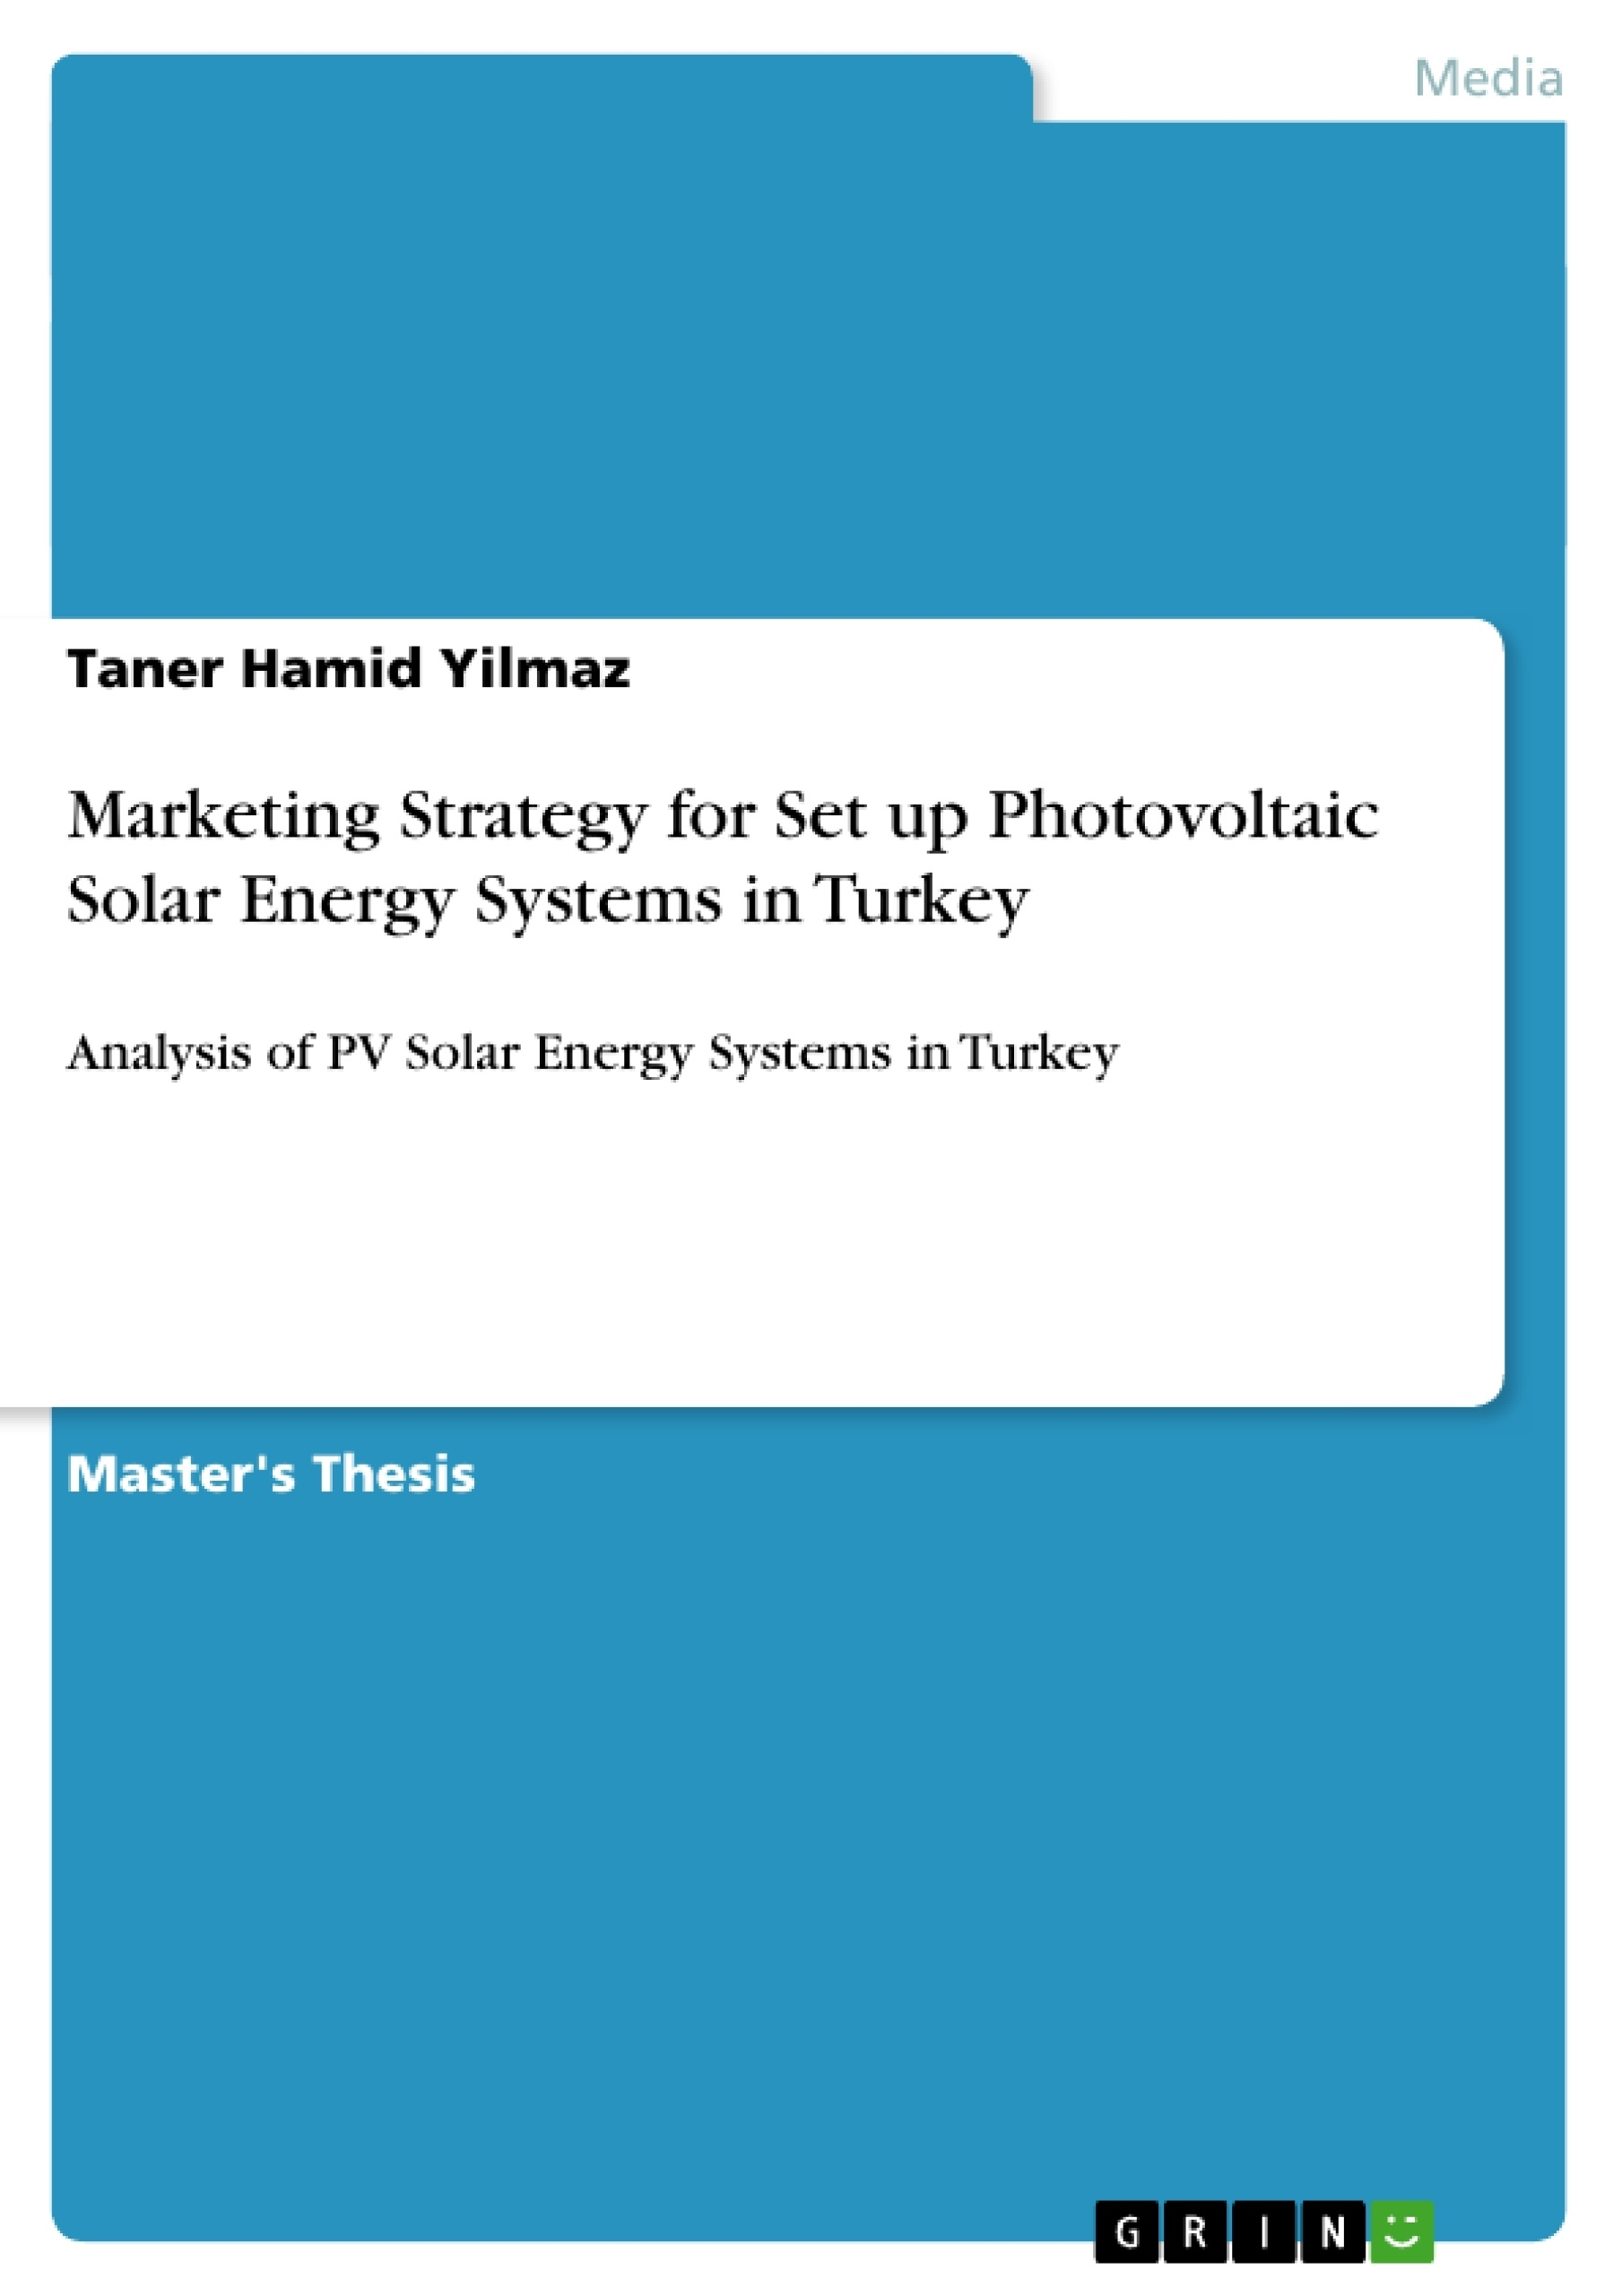 Title: Marketing Strategy for Set up Photovoltaic Solar Energy Systems in Turkey